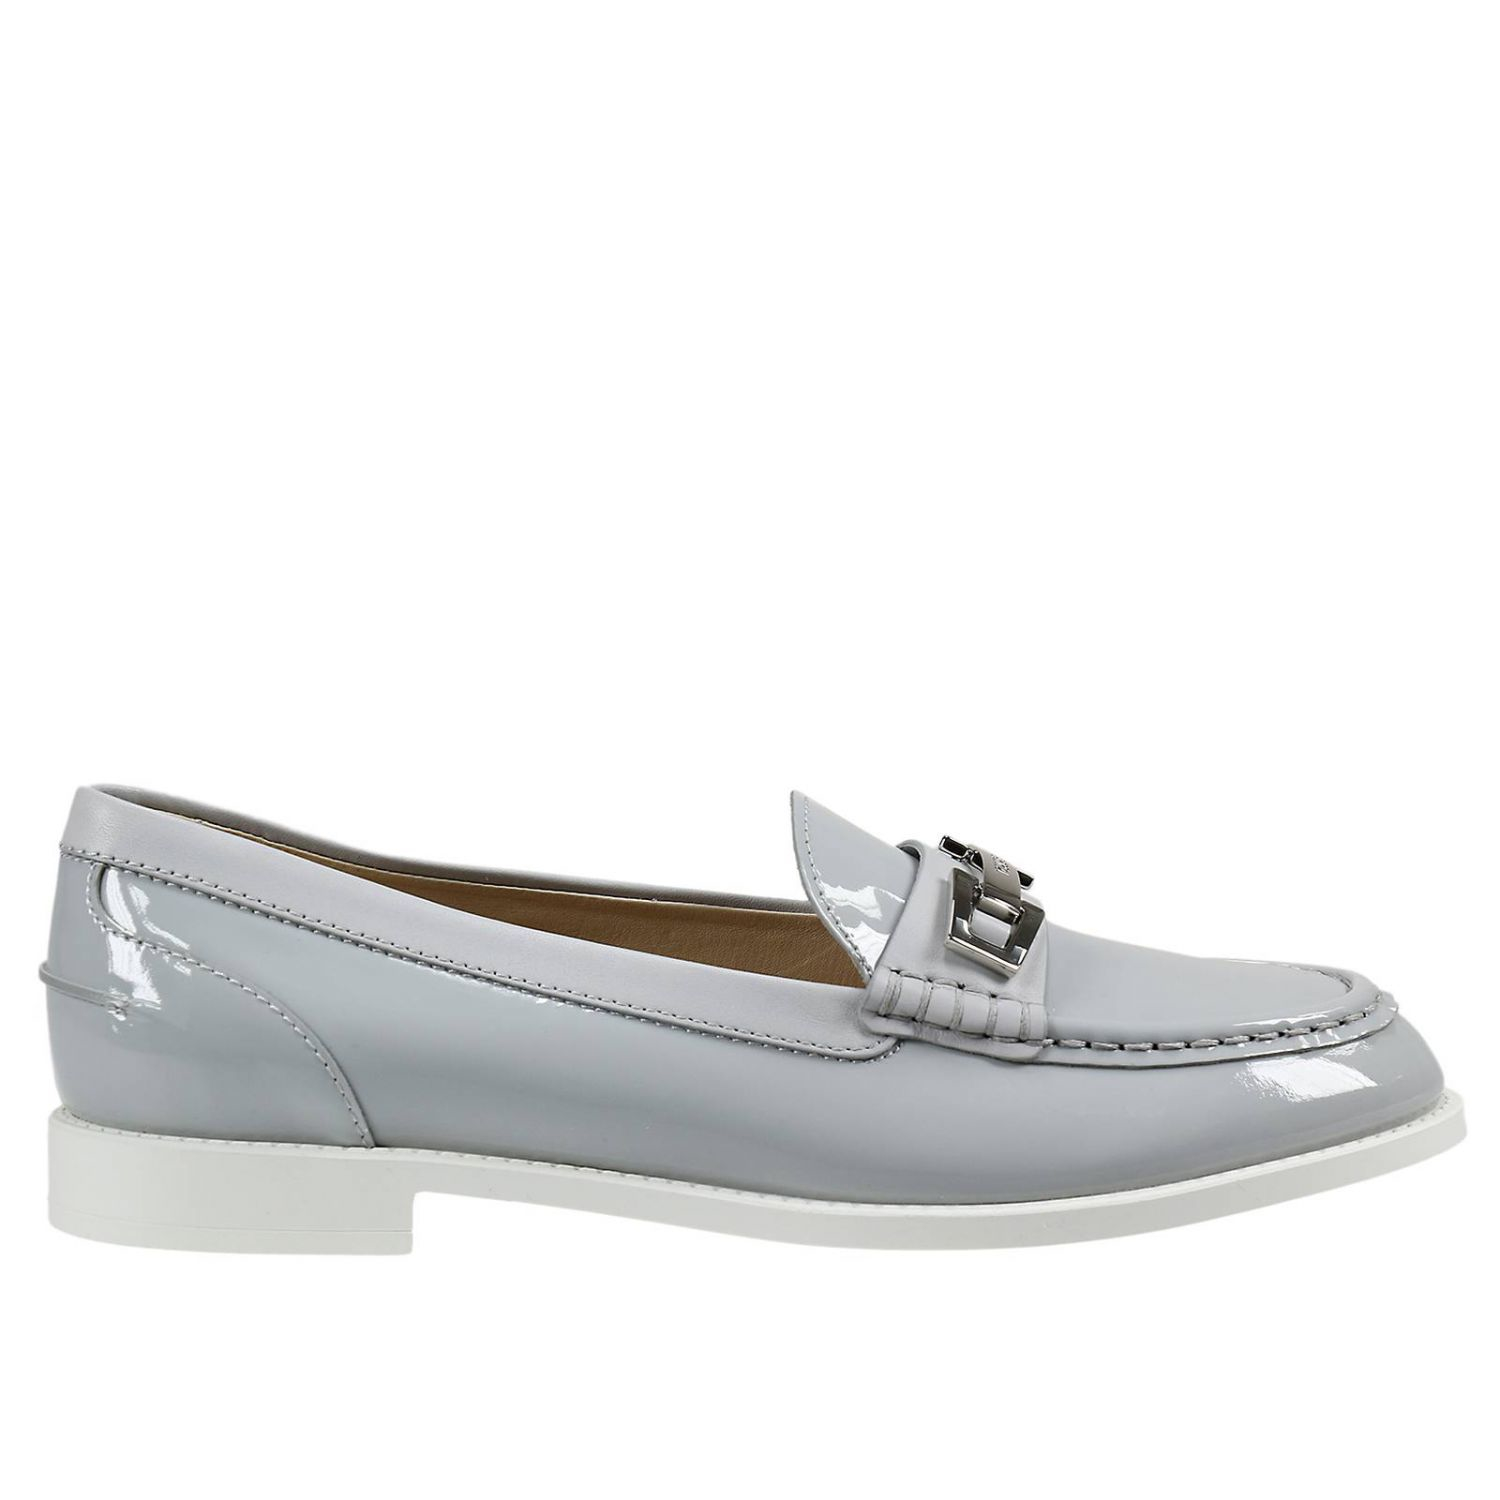 Todu0026#39;s Flat Shoes Shoes Woman In Gray (Grey) | Lyst